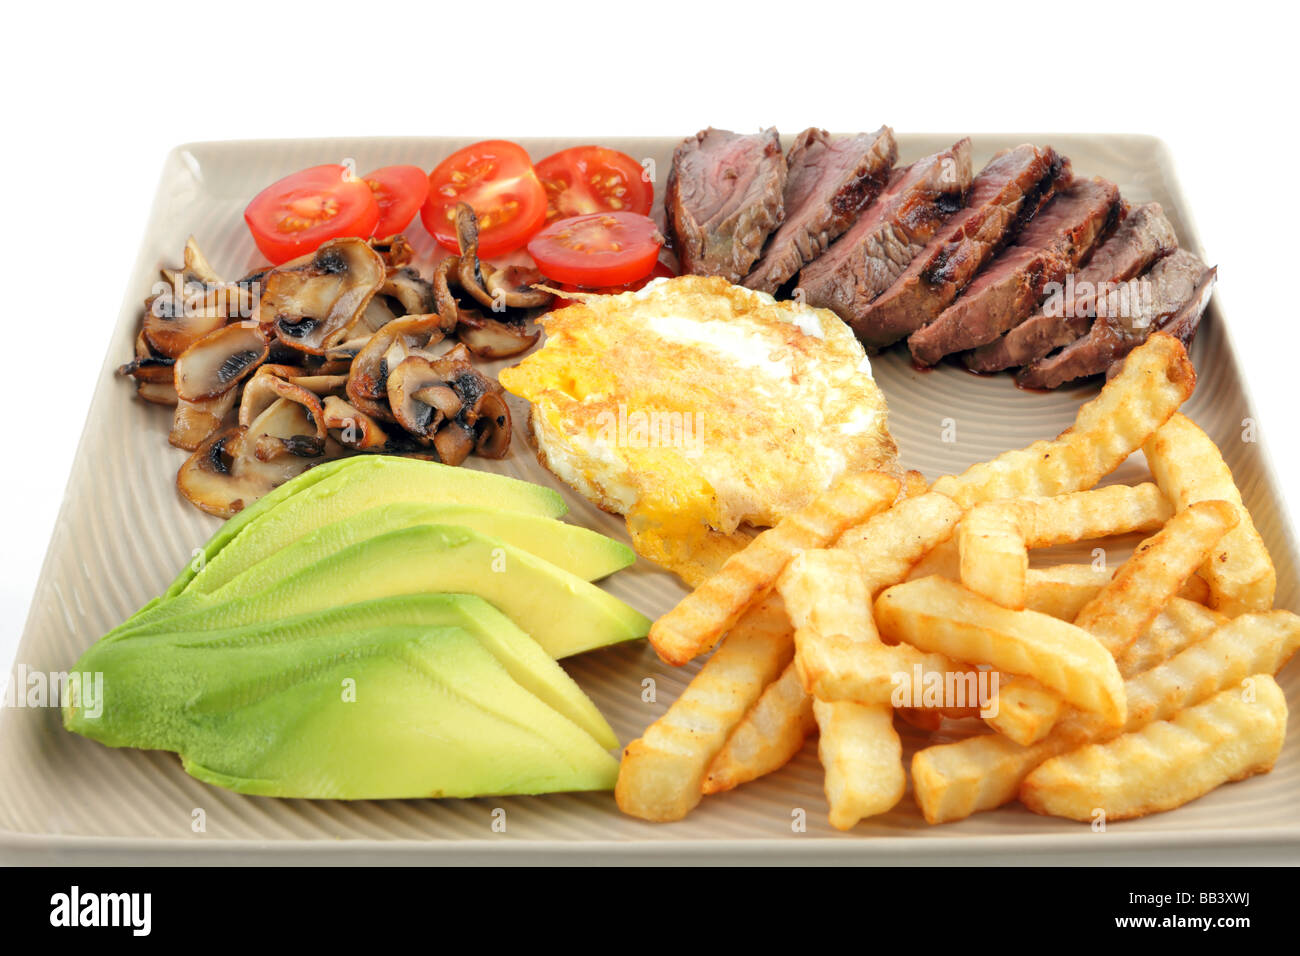 Steak dinner with egg and chips tomato avocado mushrooms - Stock Image